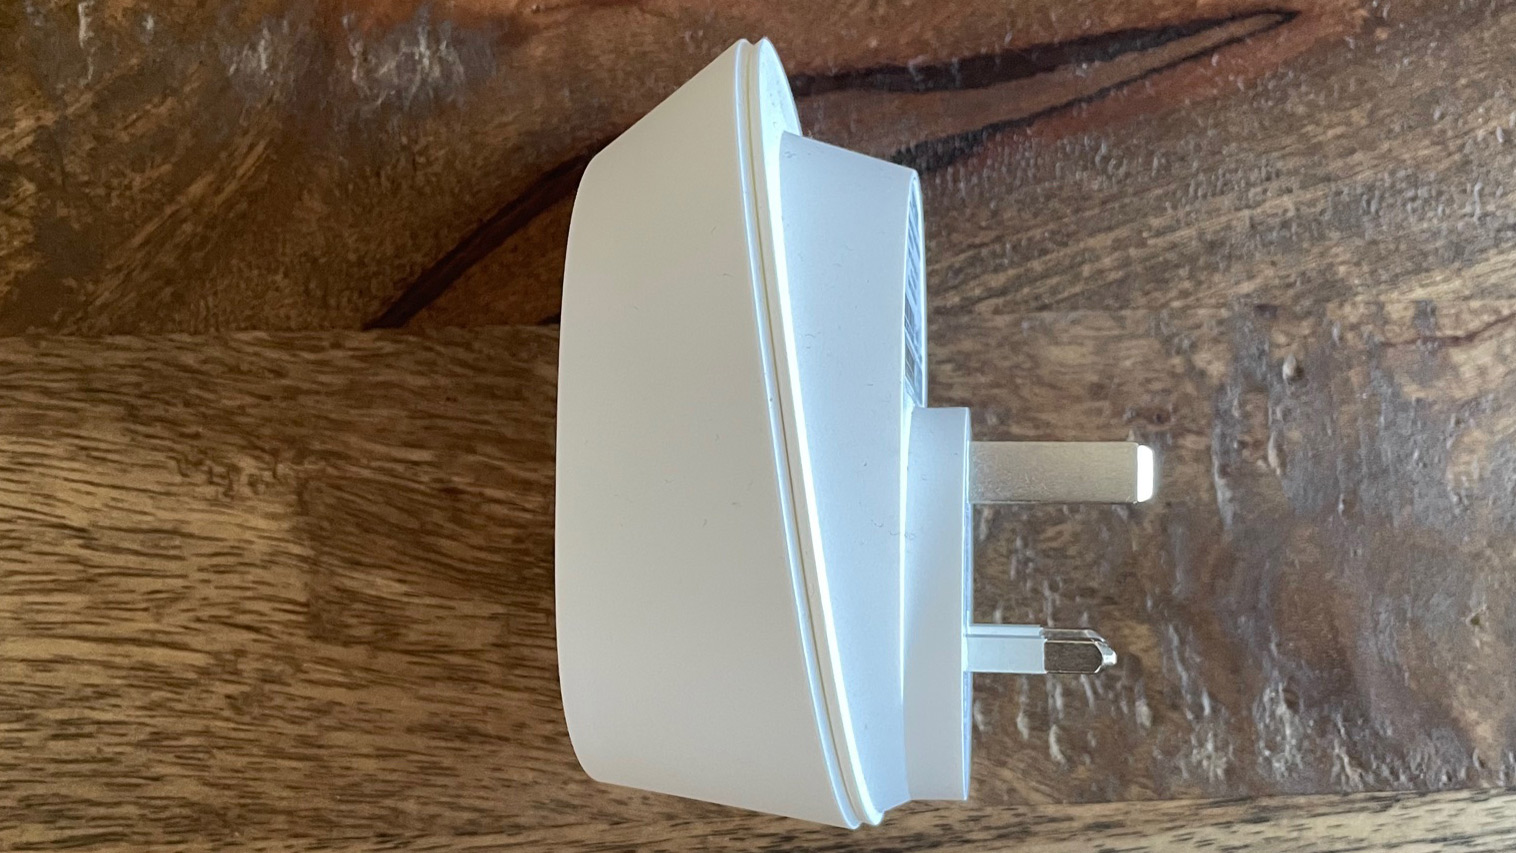 TP-Link Smart Wi-Fi Plug with Energy Monitoring HS110